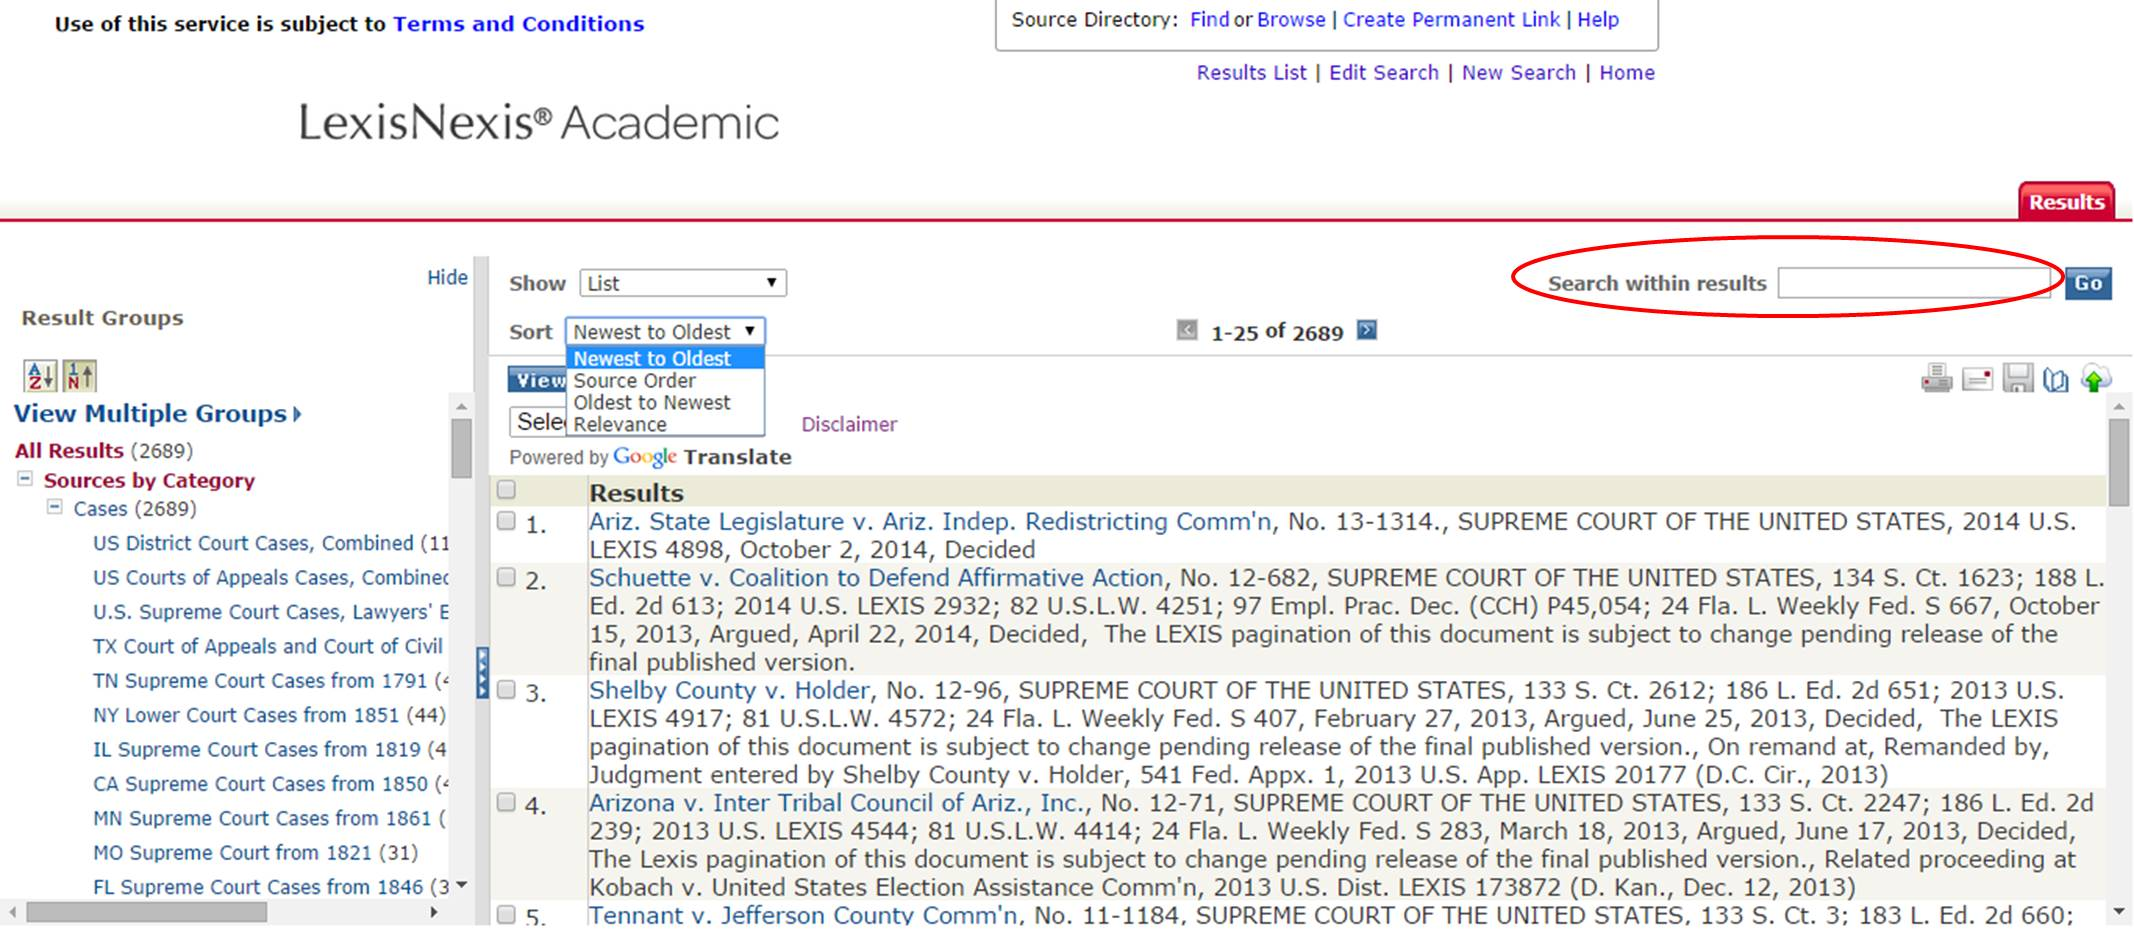 LexisNexis Academic results list screenshot